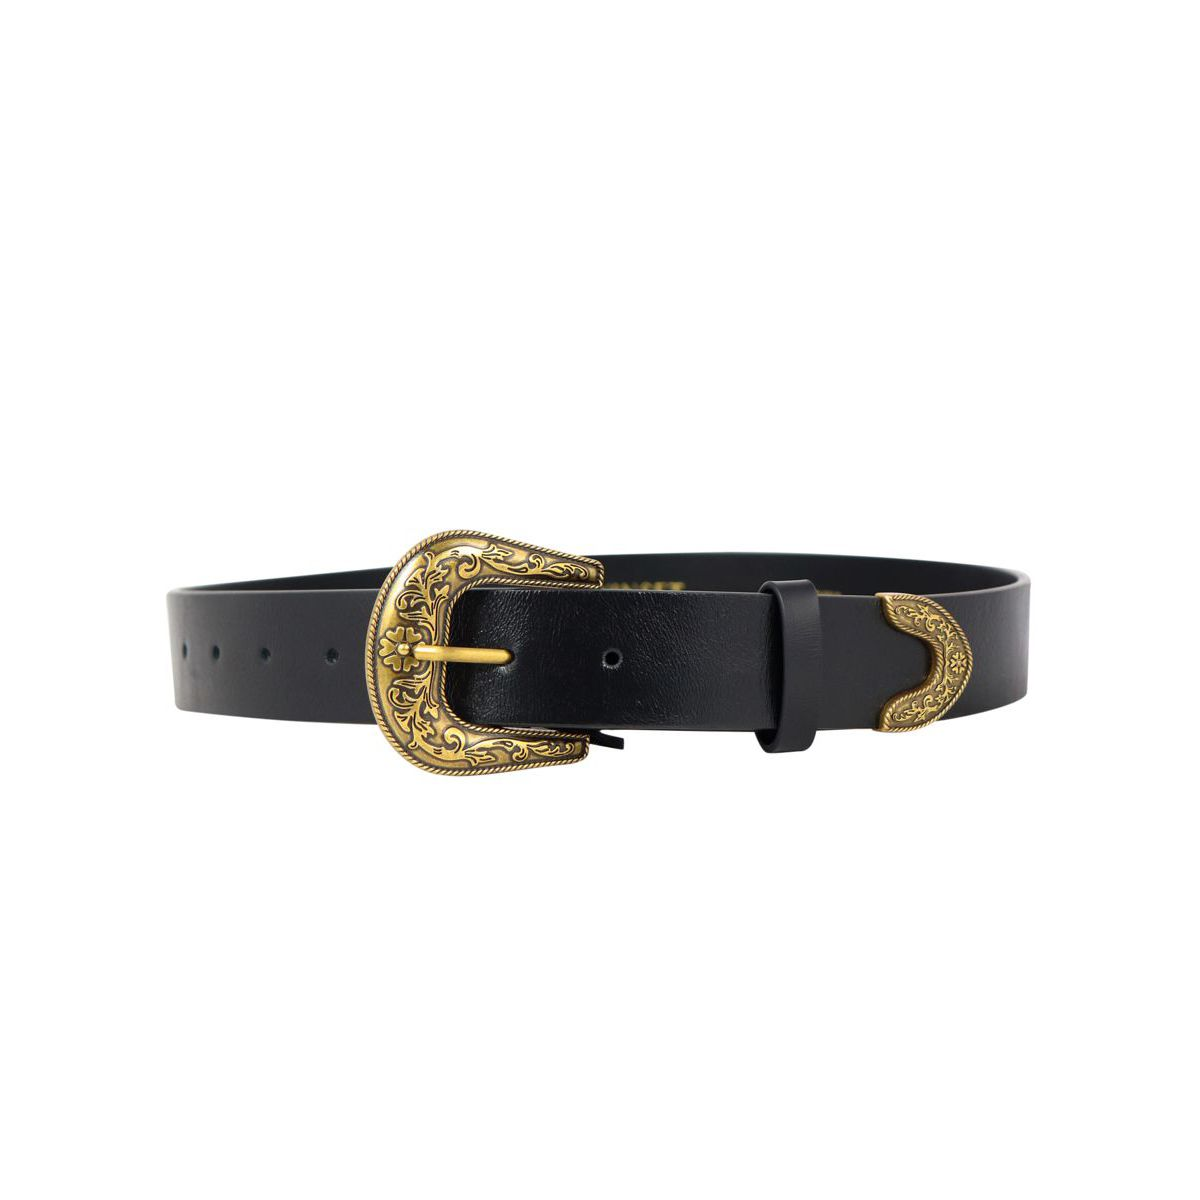 Leather belt with decorated buckle Black Twin-Set